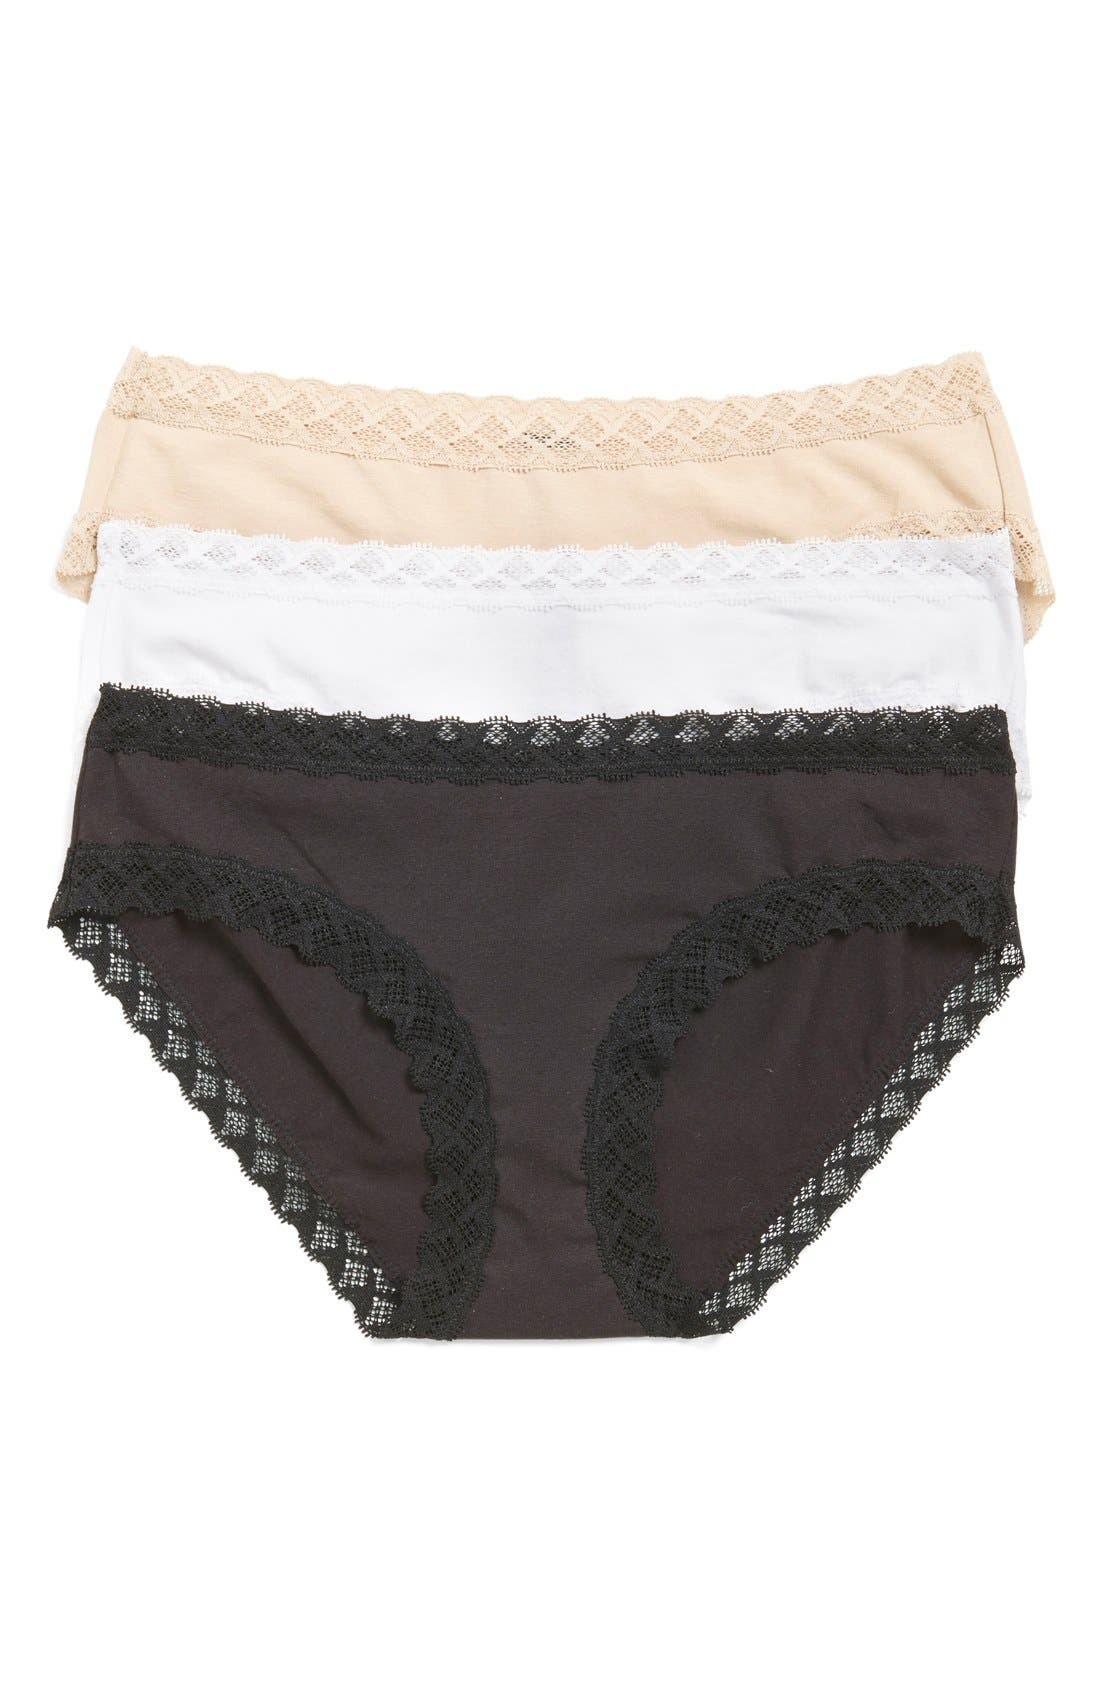 NATORI Bliss 3-Pack Cotton Girl Briefs